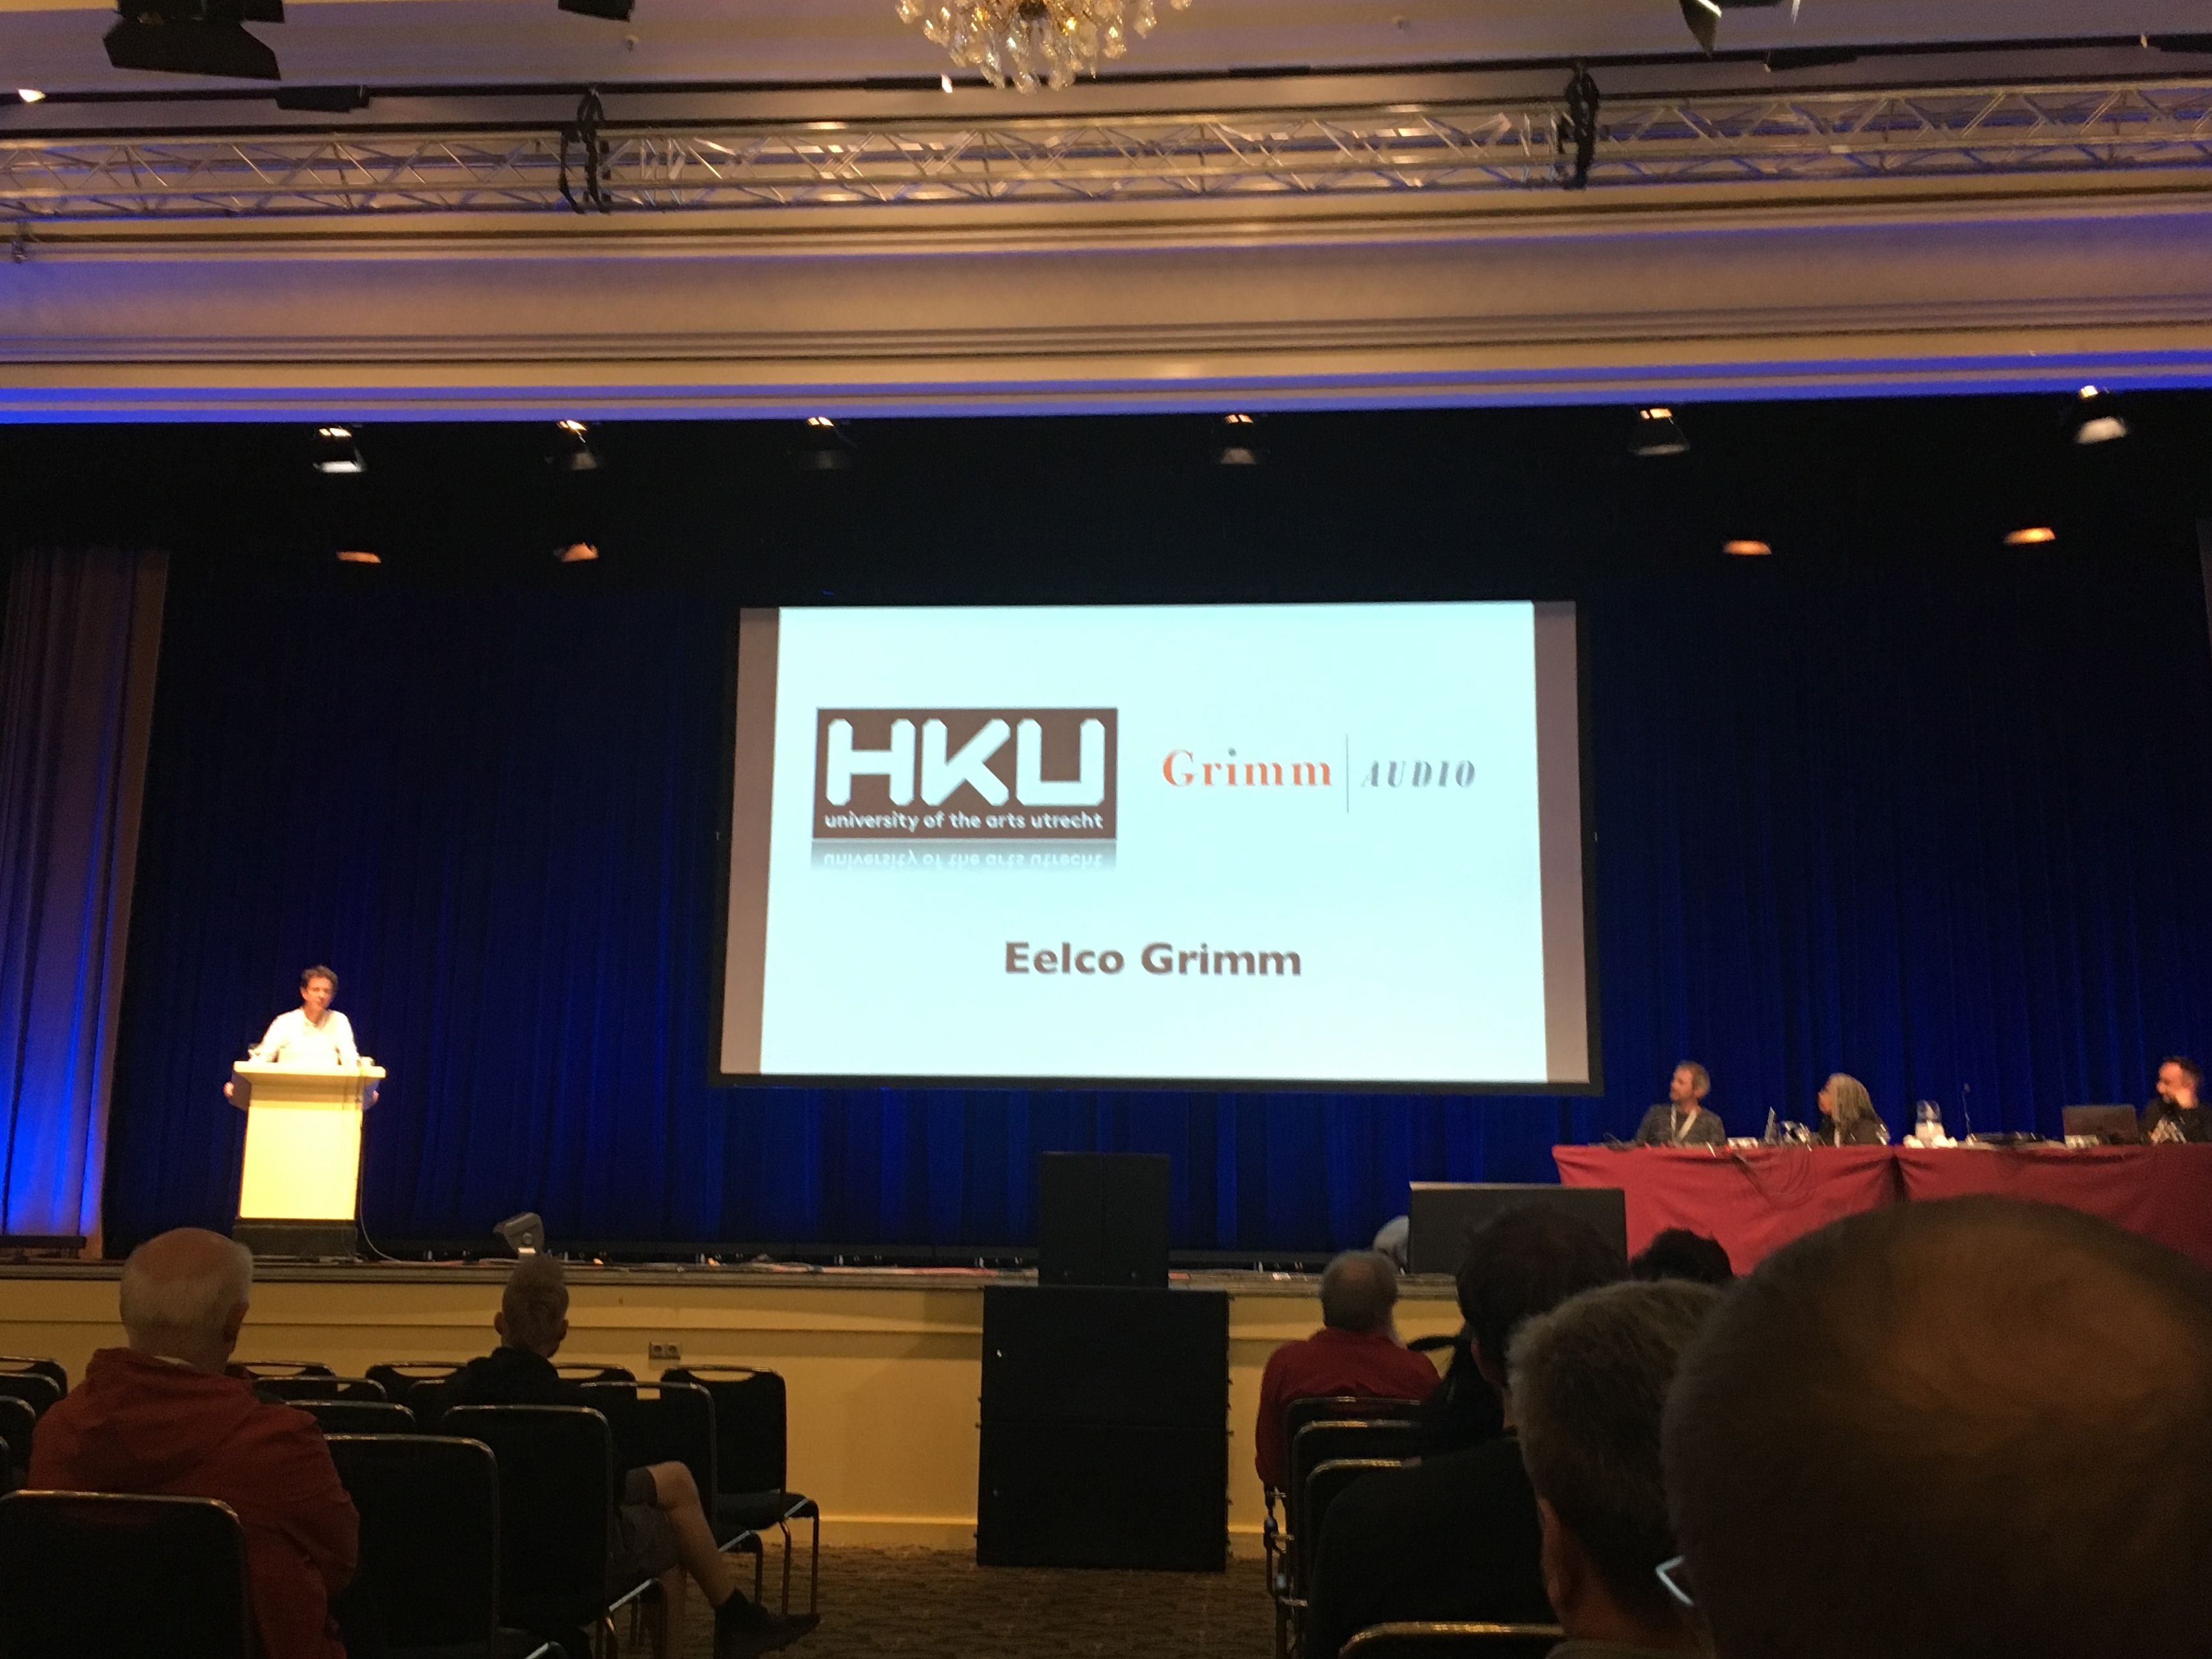 Optimum loudness normalization for music streaming: Eelco Grimm, HKU University of the Arts and Grimm Audio